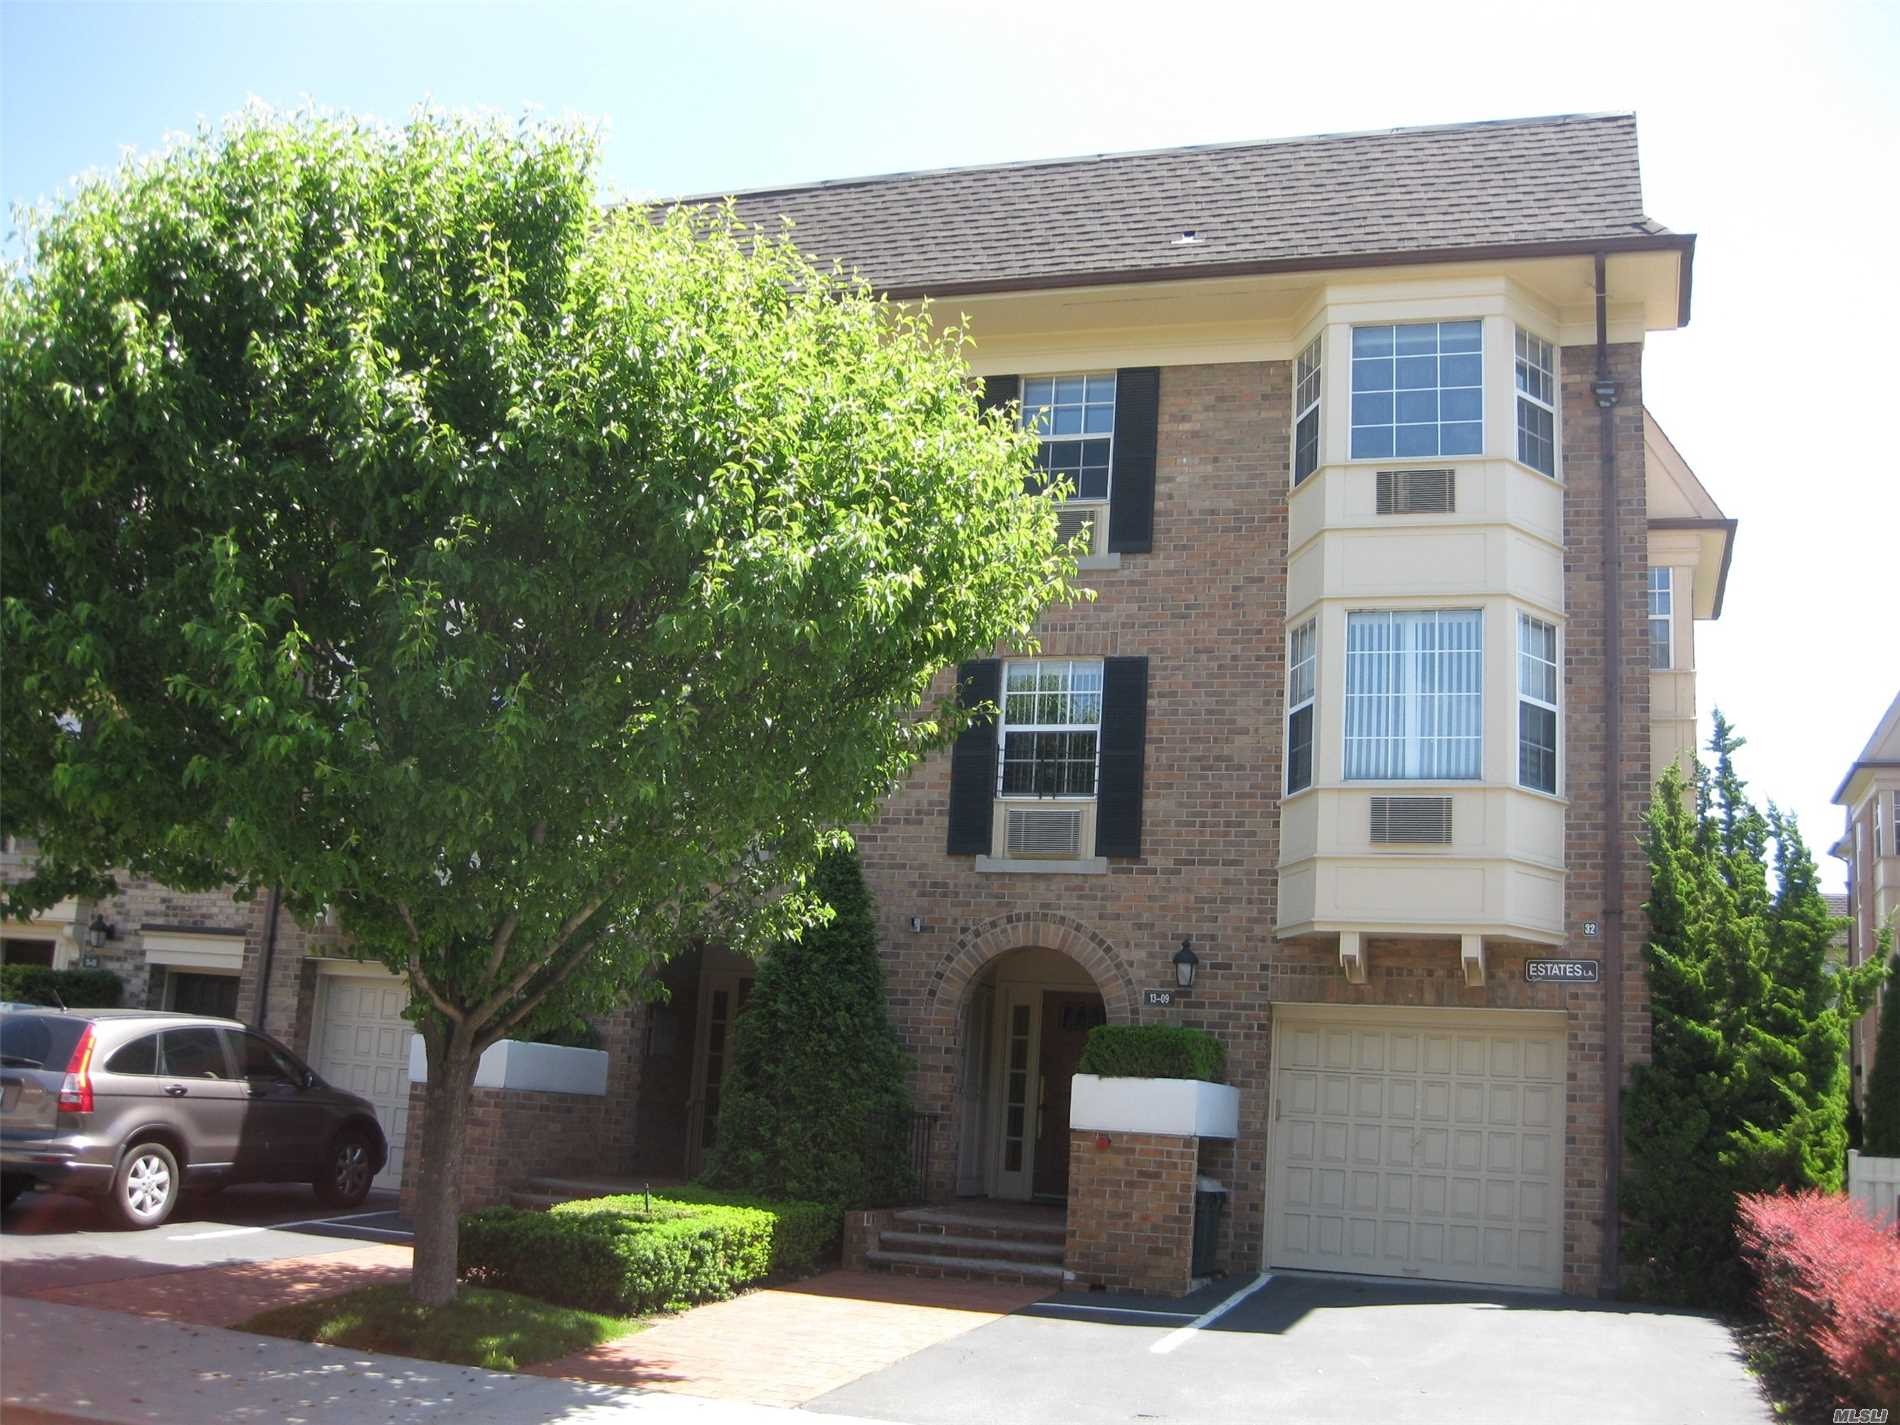 Gated Community Resort Style Luxury Living Prime Location, End Unit, Totally Redone, New Kit & Baths, Hard Wood Floor, Bay Window, Sliding Door To Terrace, 24 Hr Security, Club House Indoor-Out Door Pool, Tennis Court.